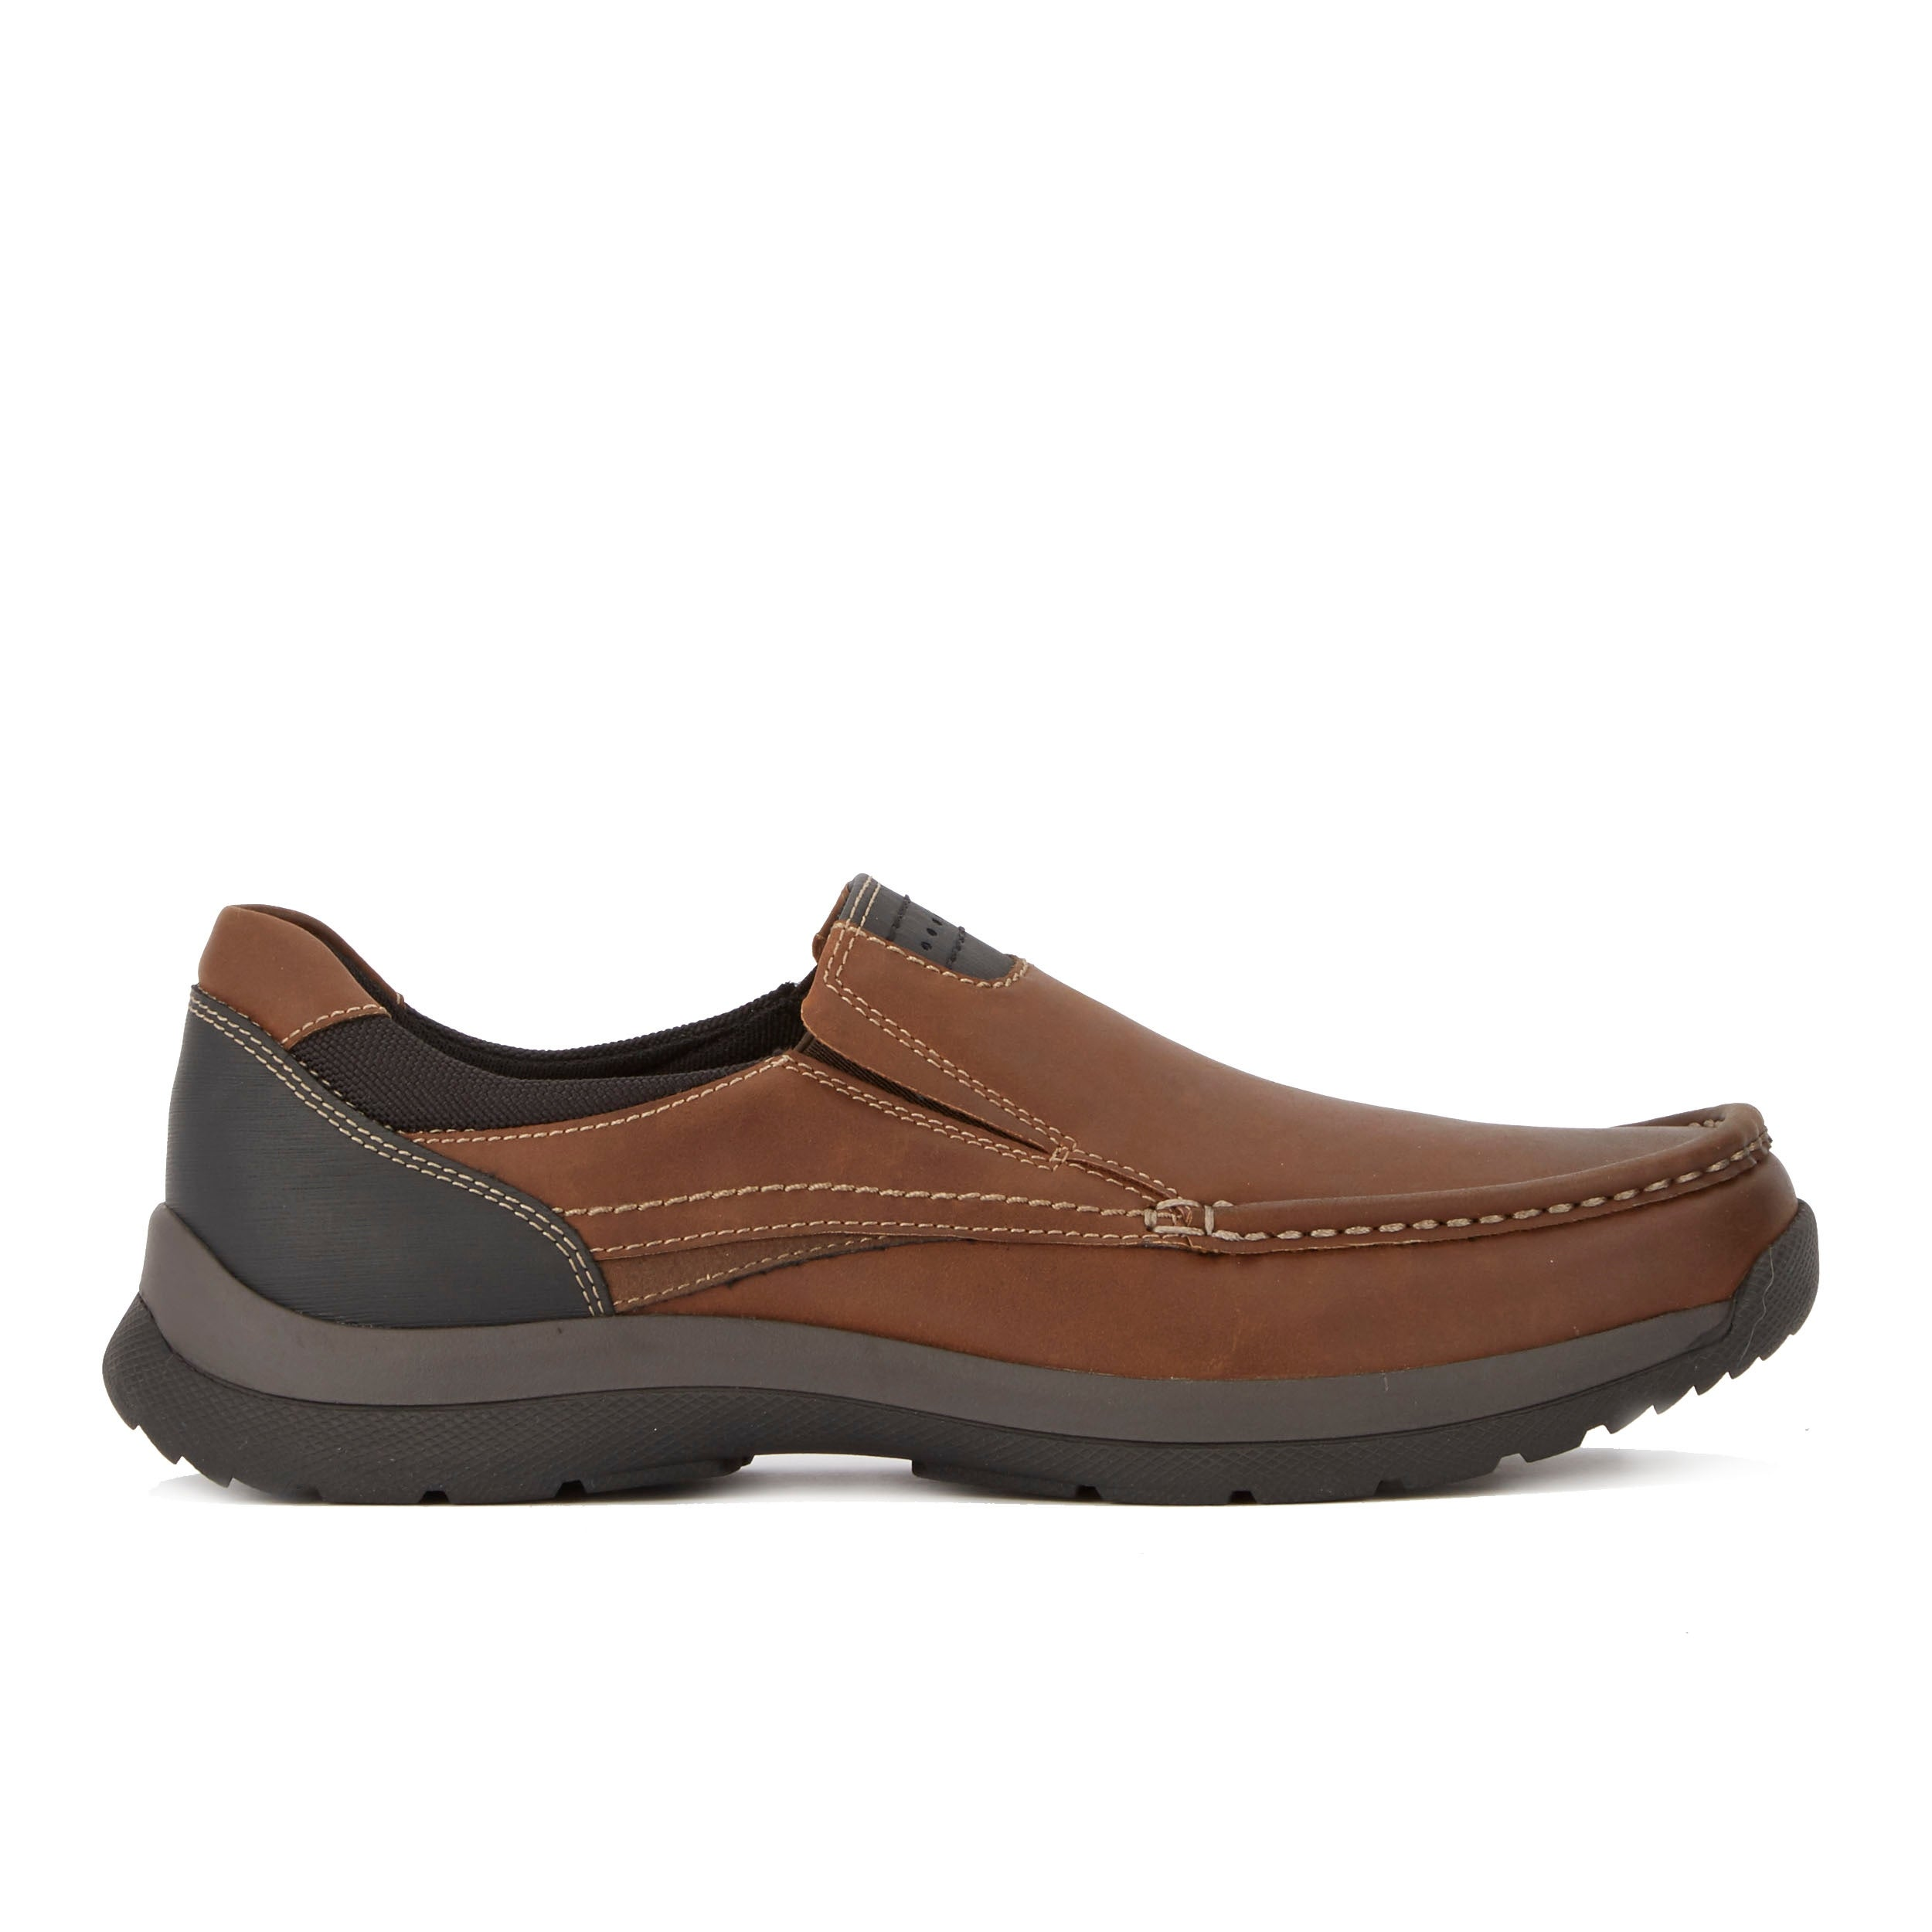 Shoes /& Jewelry Shoes Shoes SZ Dockers Ramsey Slip On Clothing